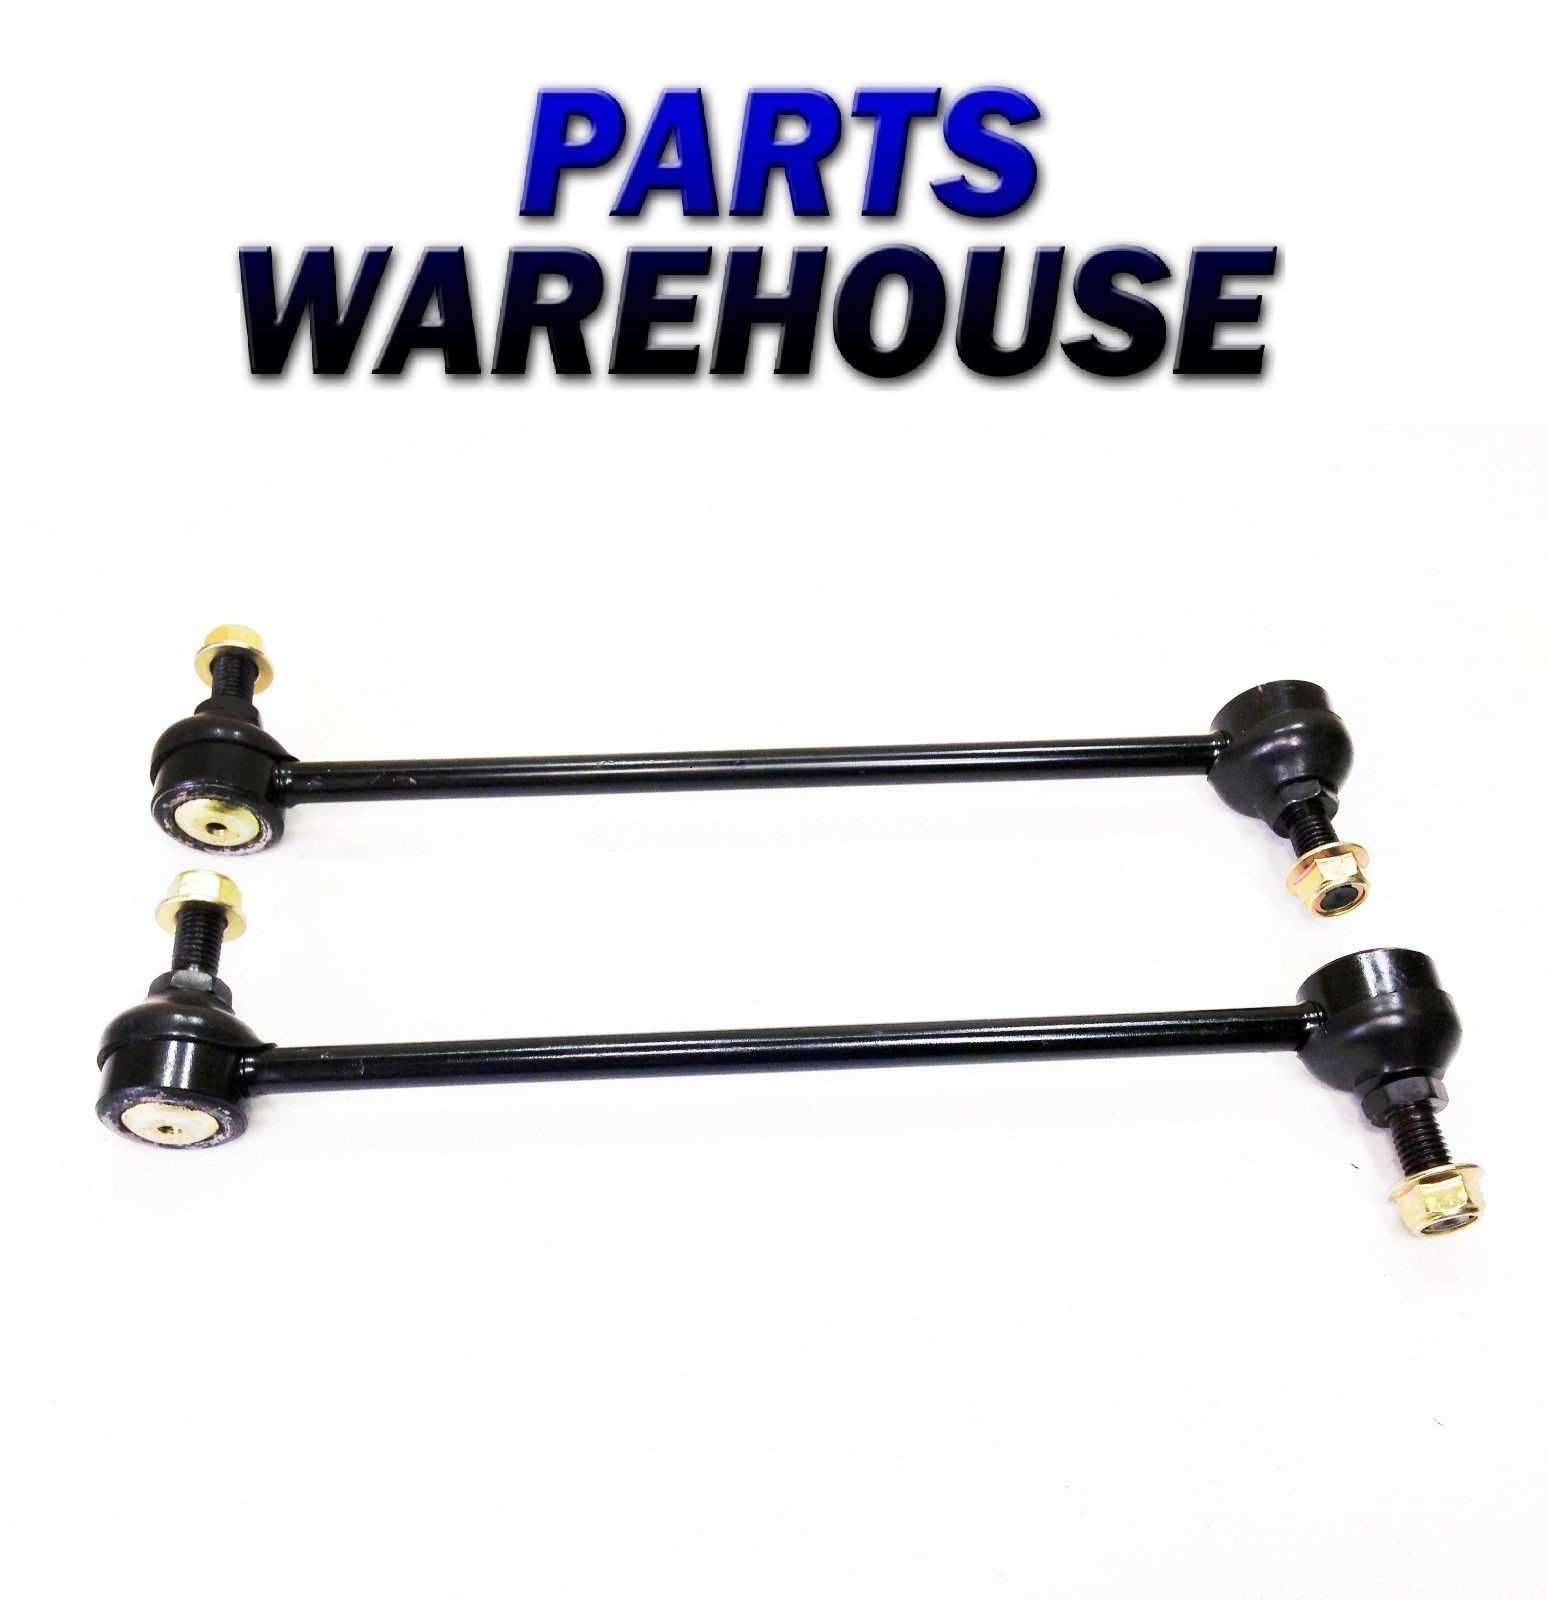 2 FRONT SWAY BAR LINKS FOR ACURA MDX 01-05